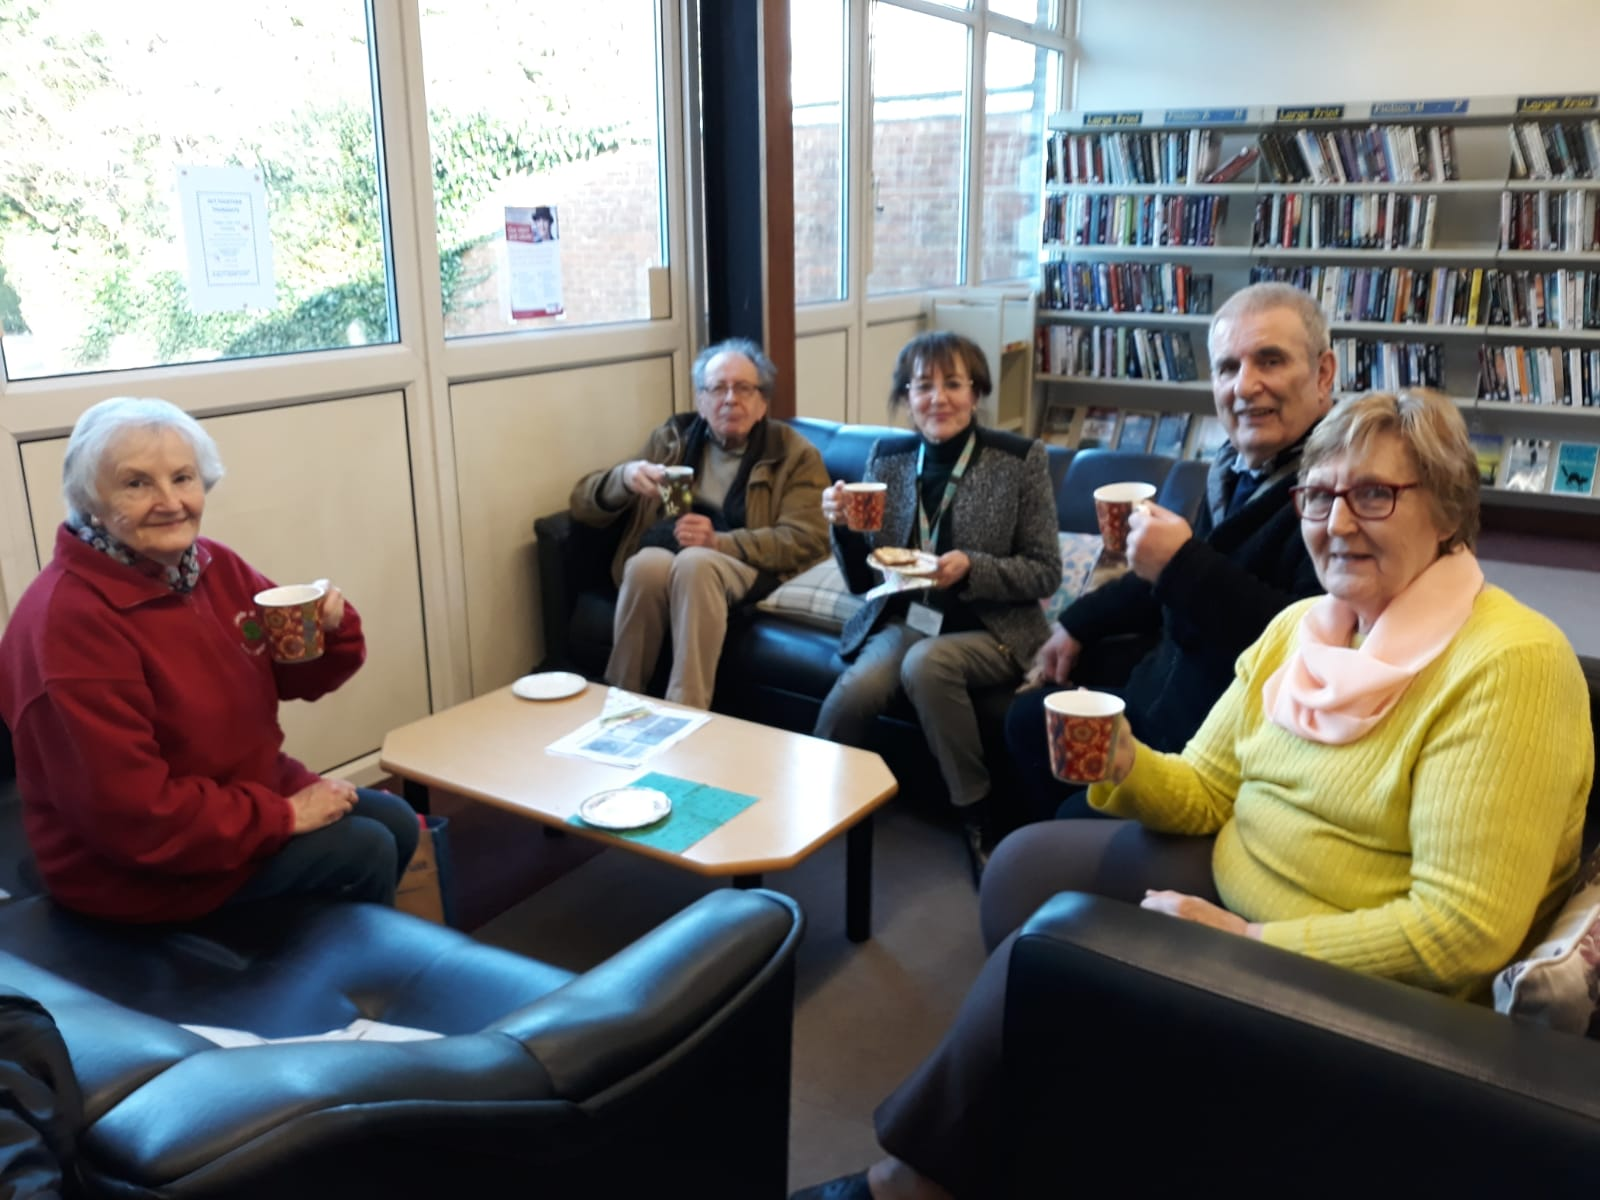 Enjoying refreshments at the weekly cafe event.